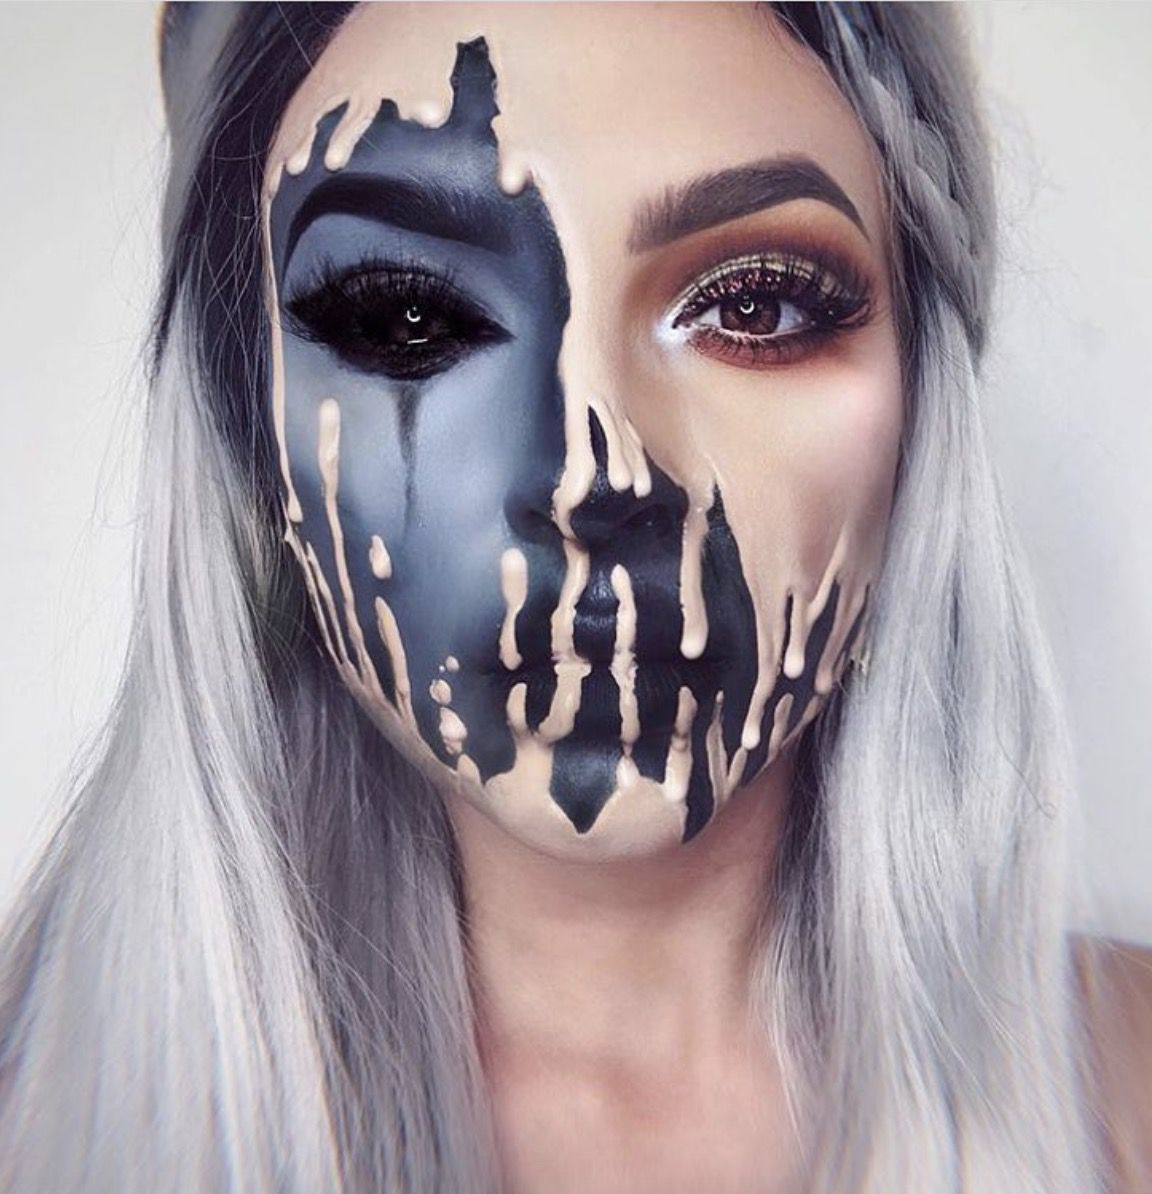 41 Most Jaw-Dropping Halloween Makeup Ideas That Are Still Pretty: Melting Face Makeup / Unicorn Hair. Click though to see more awe inspiring pretty Halloween makeup looks, gorgeous Halloween makeup and Halloween costumes. #halloweenmakeup #halloweenmakeuppretty #halloweencostumes #halloweenmakeupinspo #meltingfacemakeup